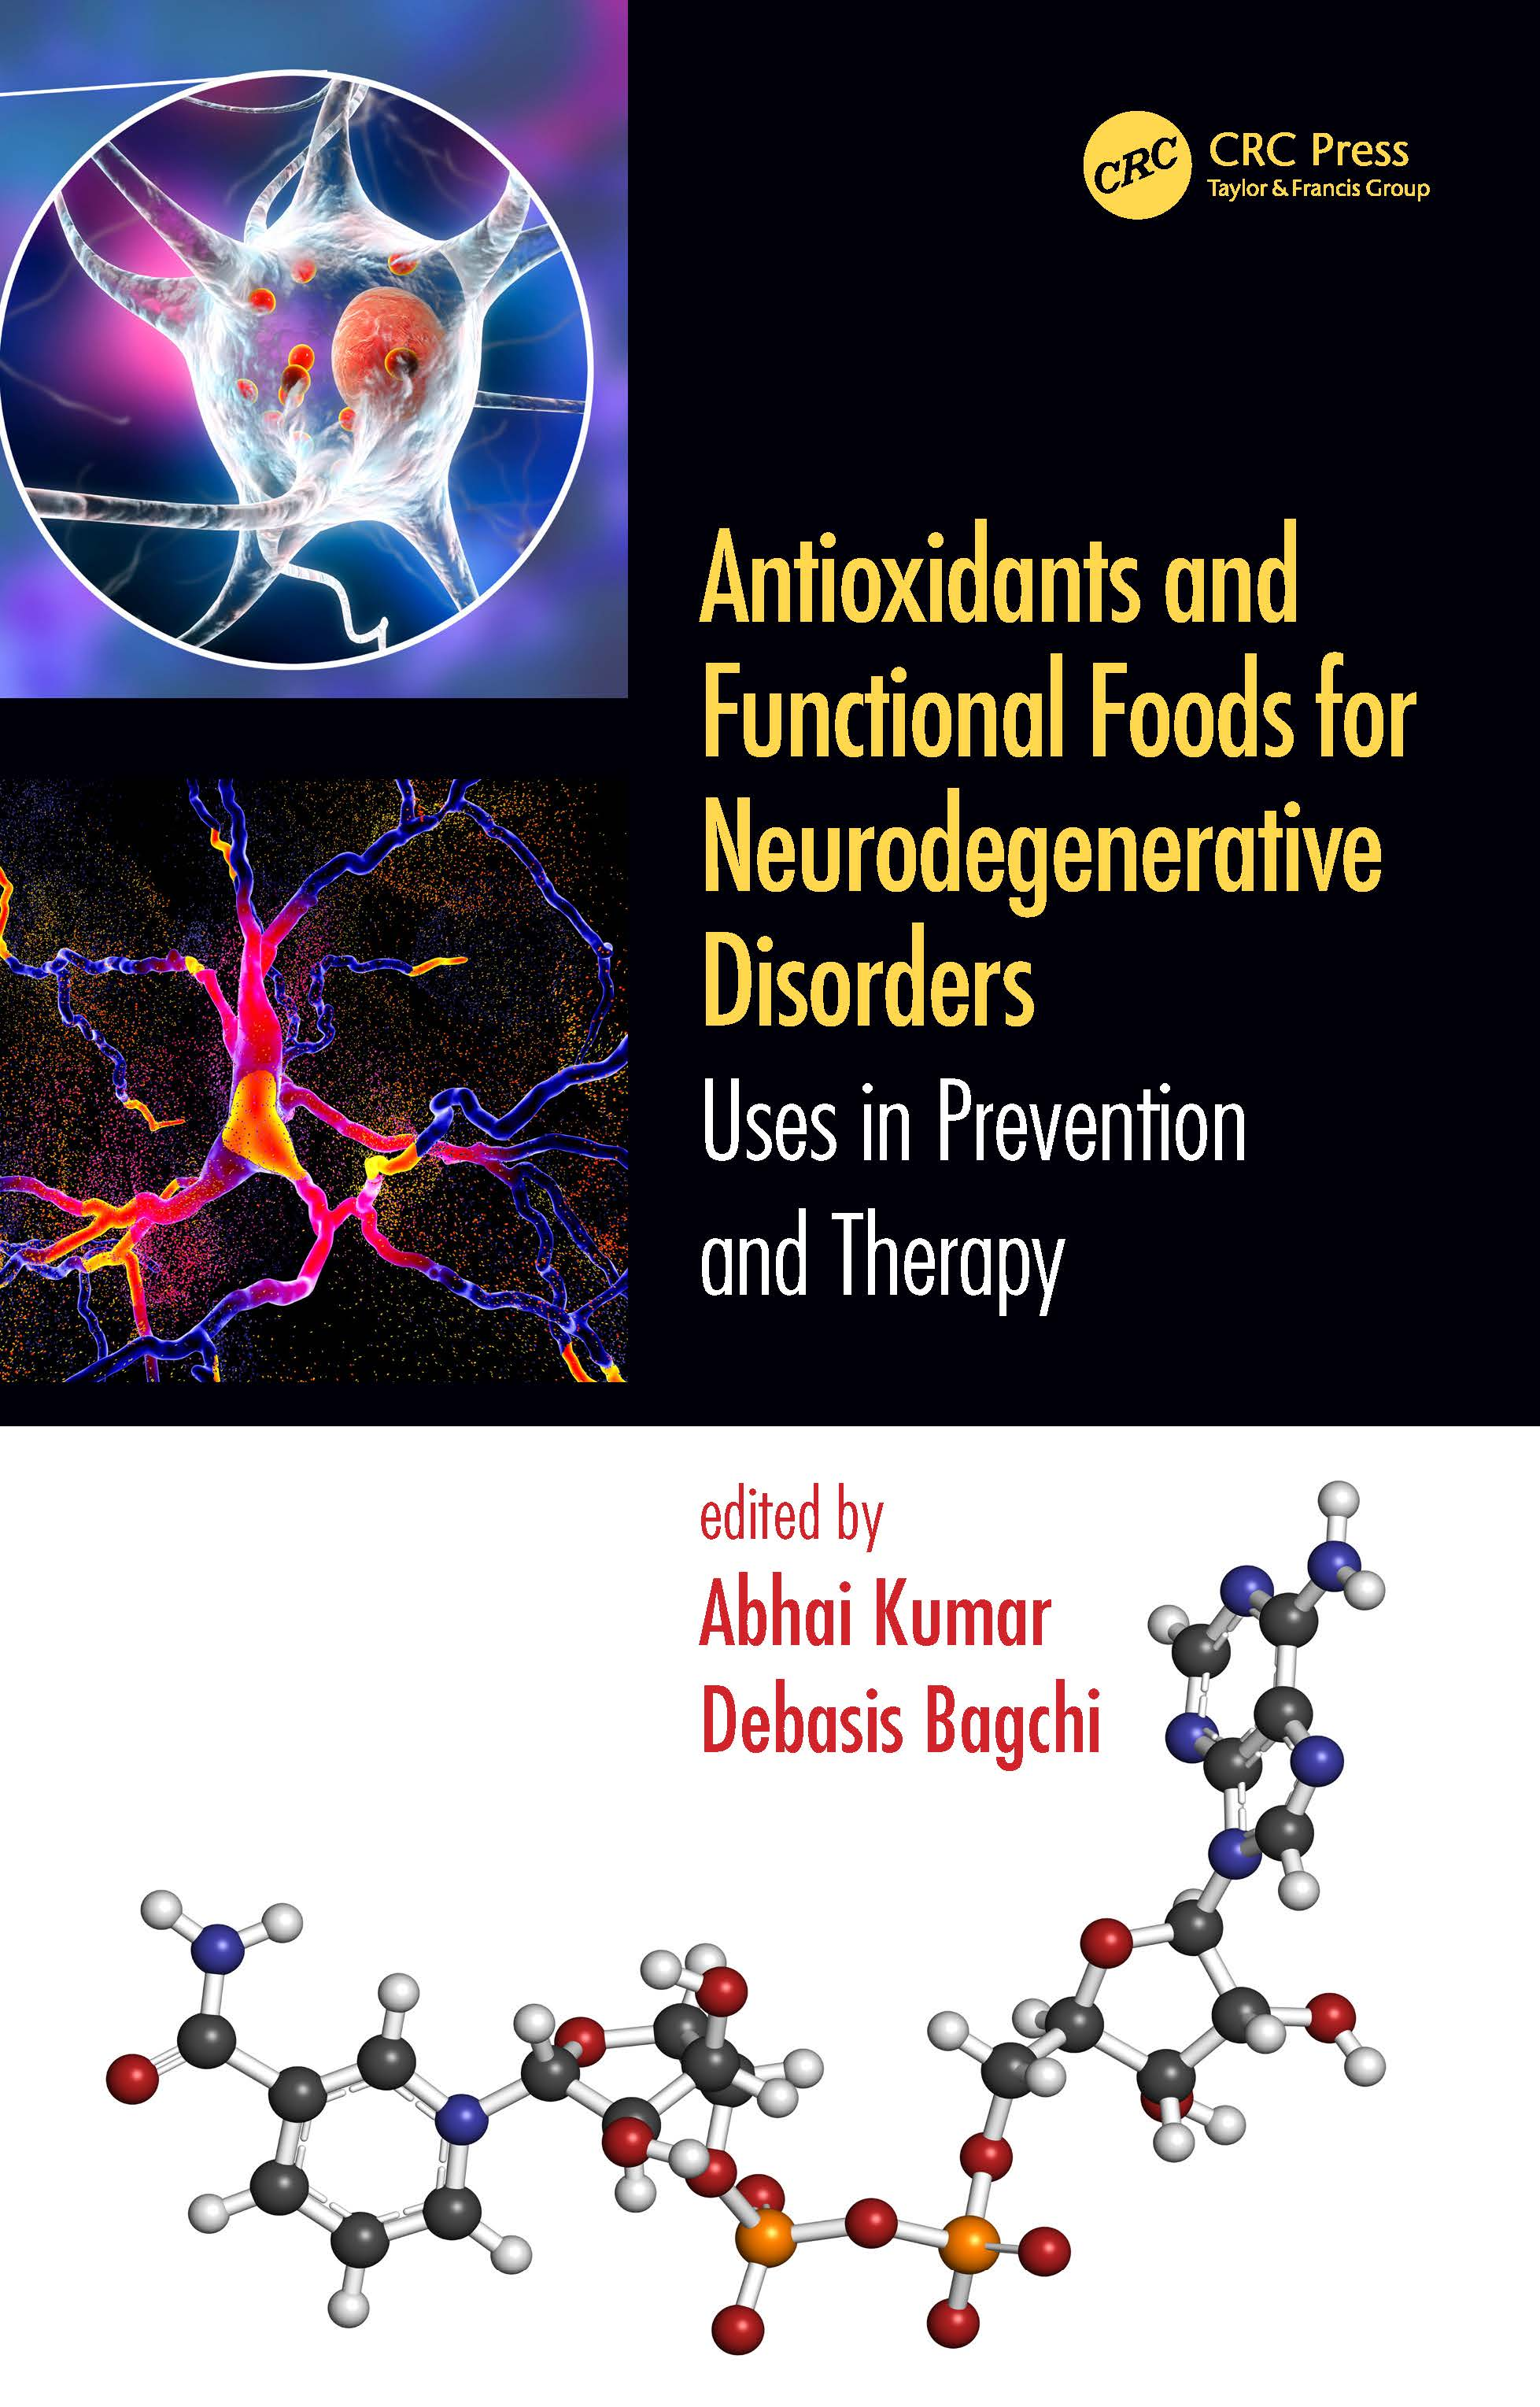 Role of Oxidative Stress in the Onset of Alzheimer's Disease